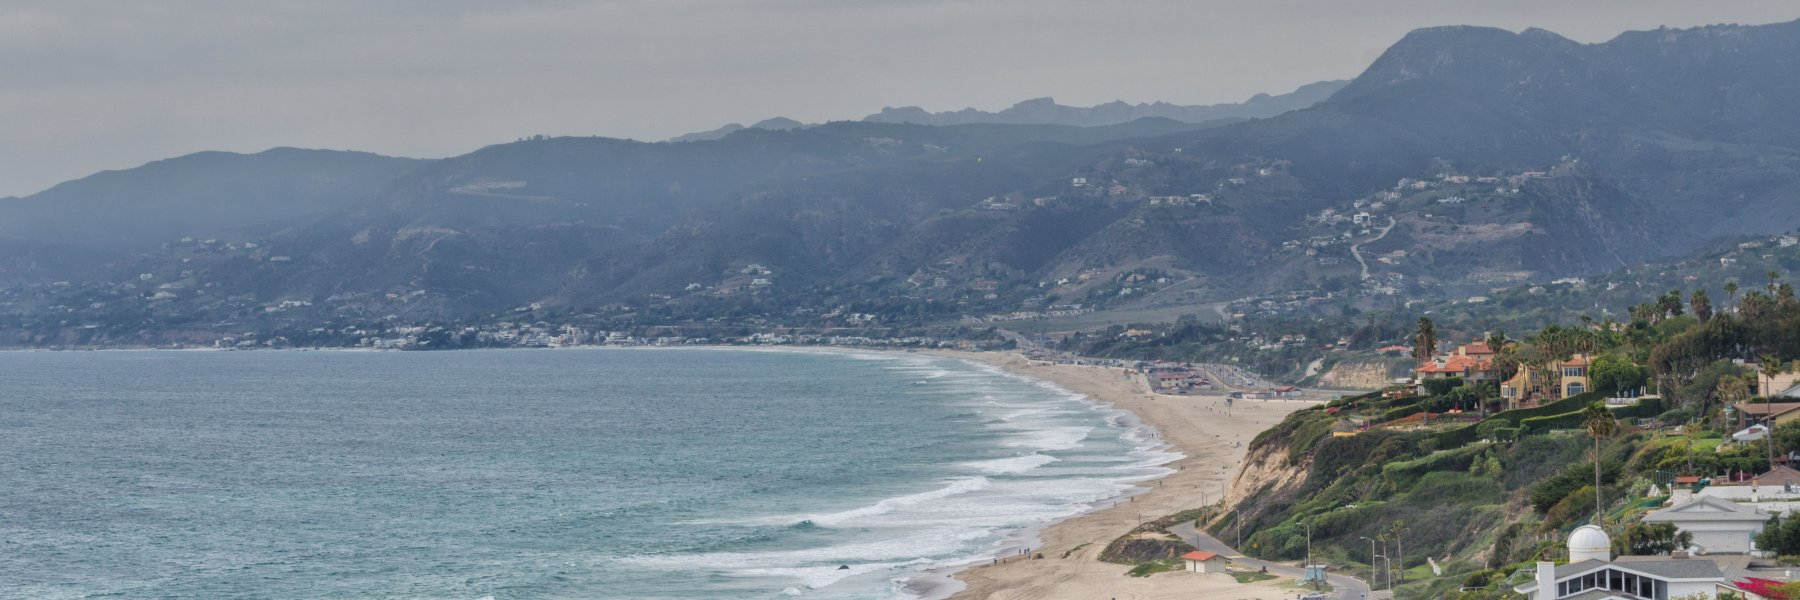 Point Dume is a community of homes in Malibu California